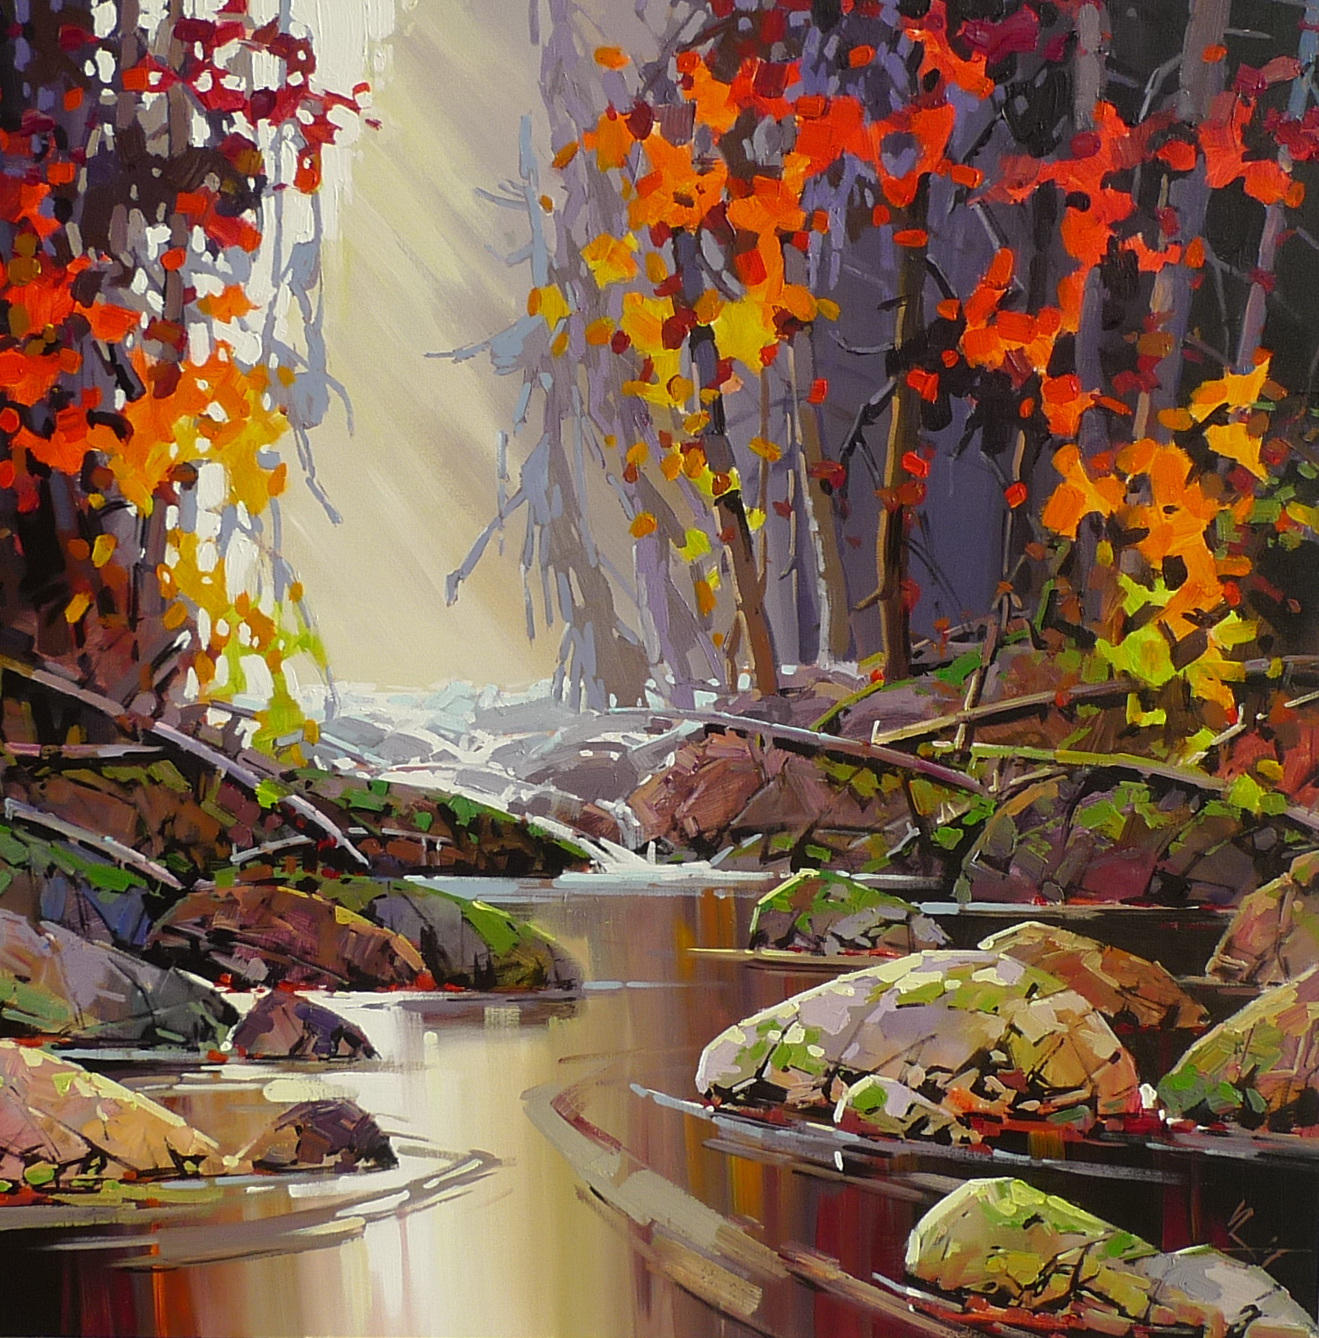 Coastal painting, Red Symphony by Bi Yuan Cheng at The Avenue Gallery, a contemporary fine art gallery in Victoria, BC, Canada.